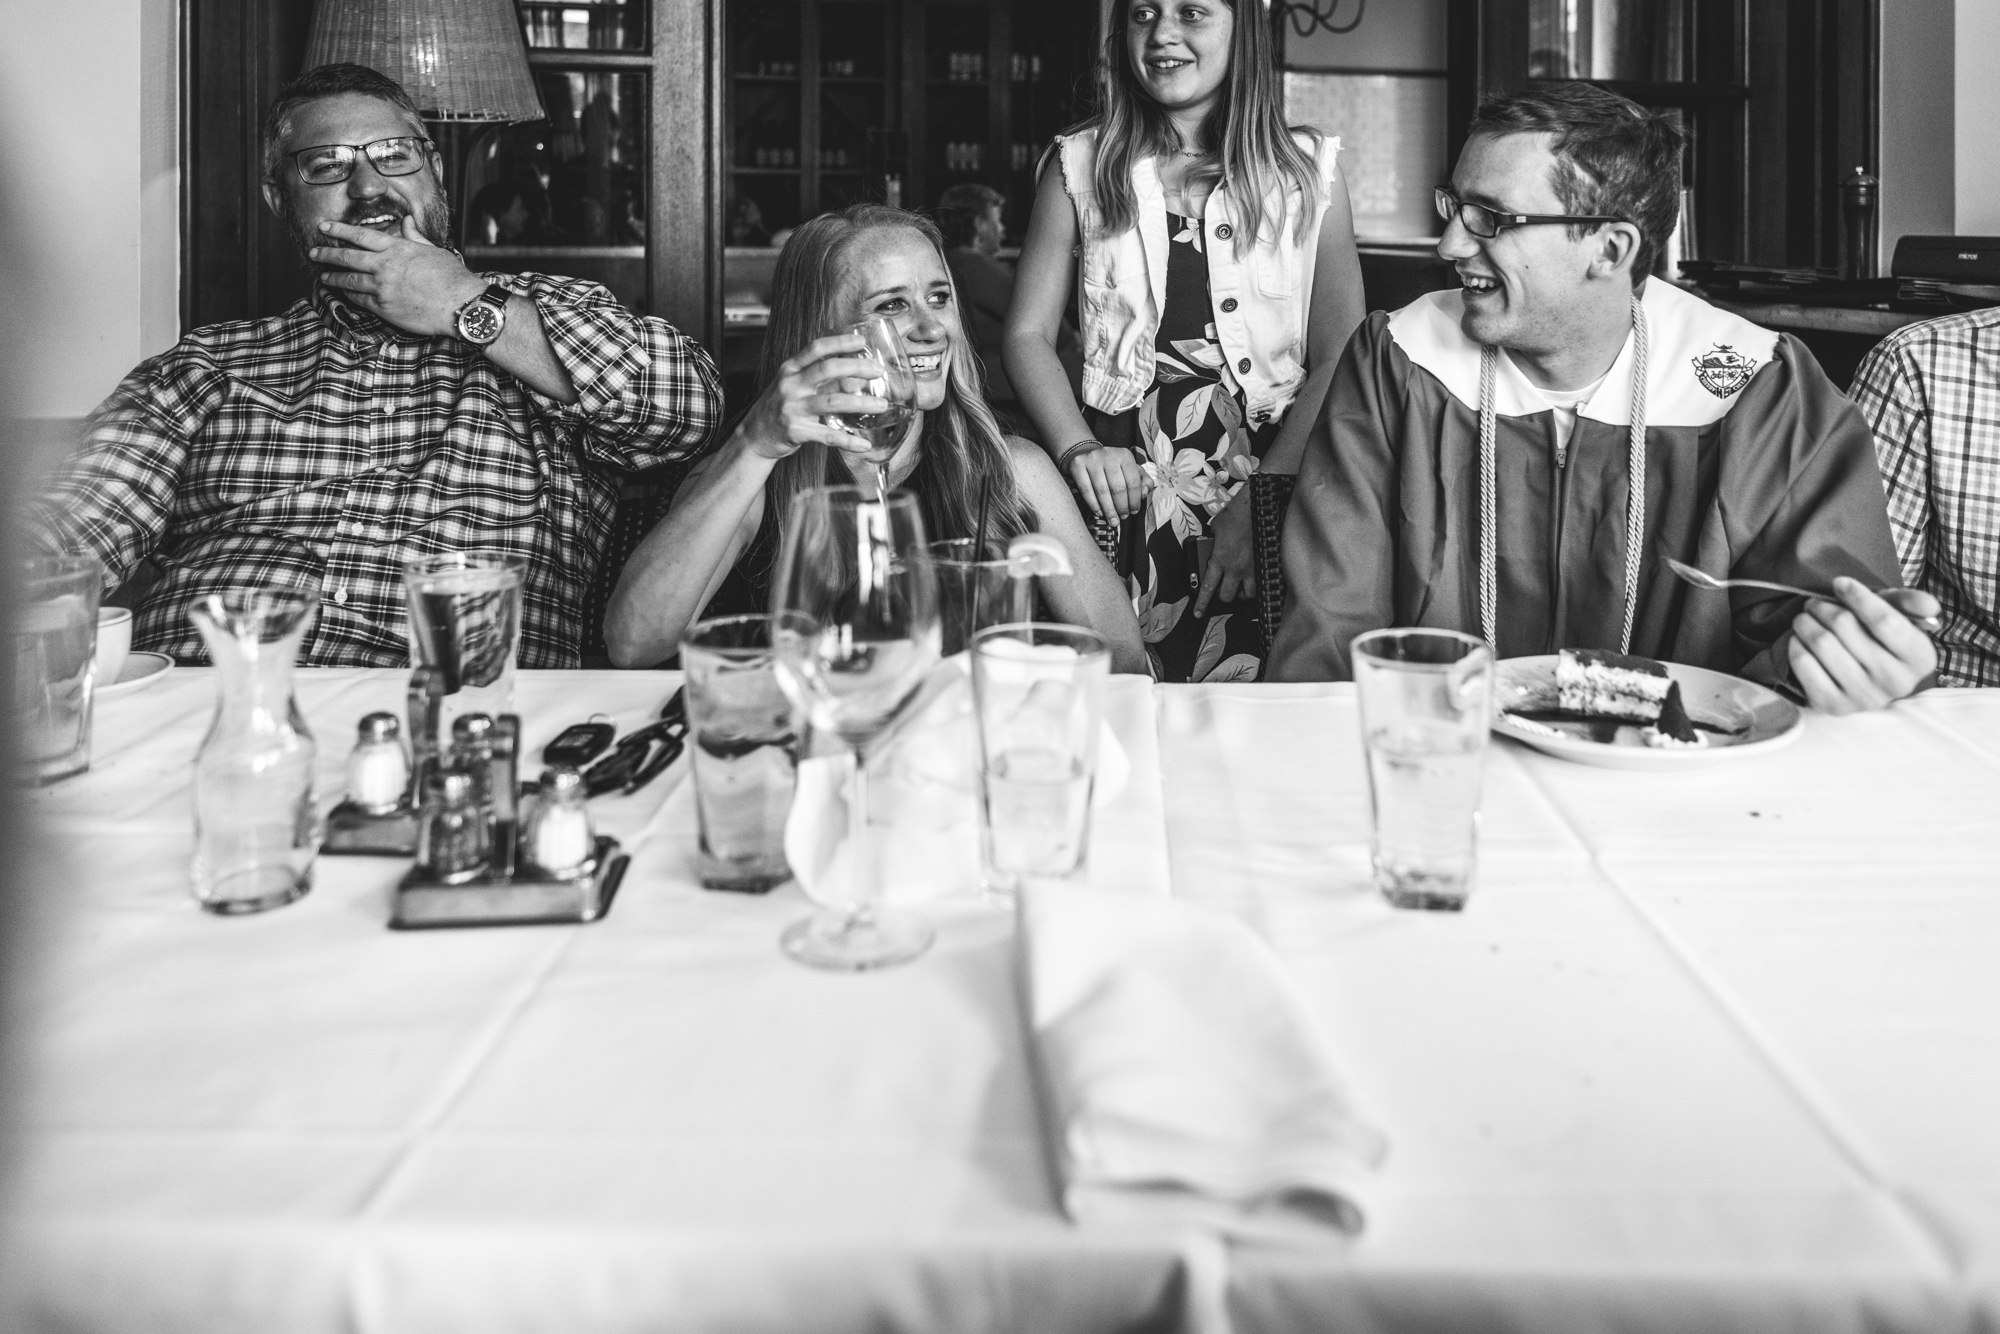 Black and white photo of a family at a restaurant together, the mother looking over and smiling at her teenage son, who has just graduation high school and is wearing his cap and gown.